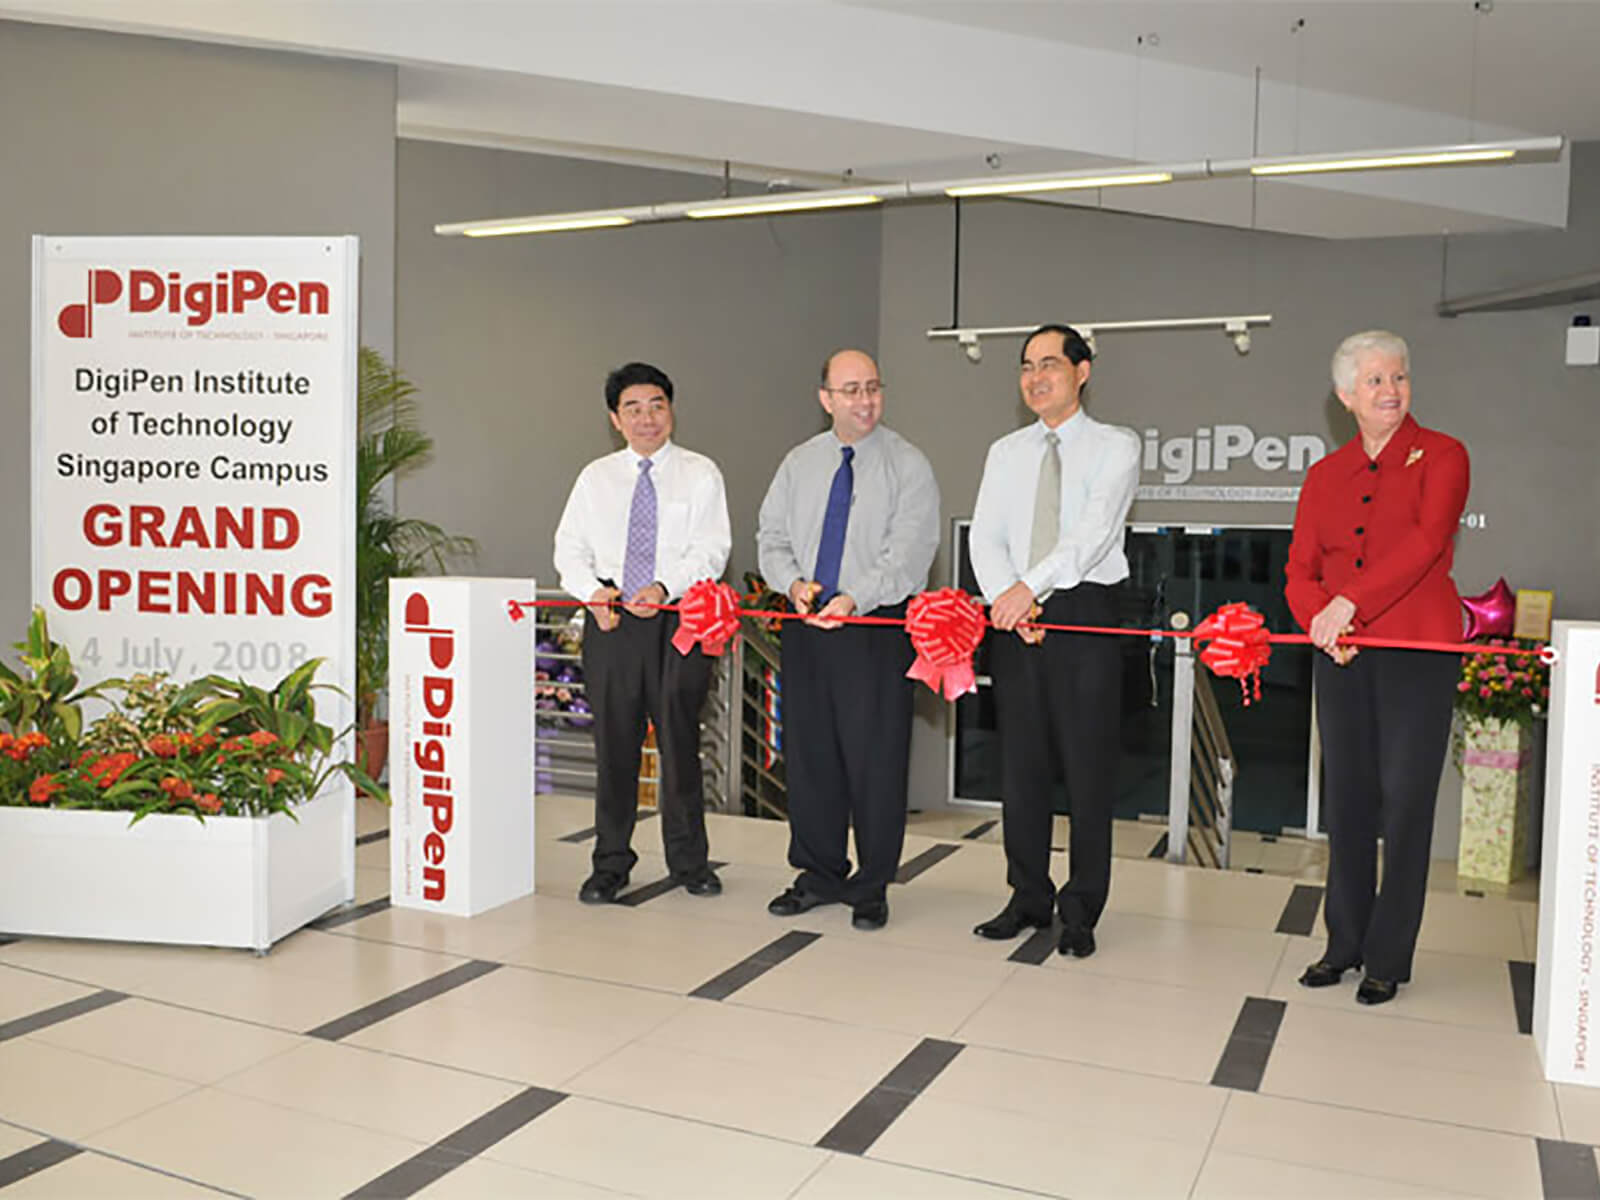 DigiPen COO Jason Chu and Founder Claude Comair cut the ribbon at the new DigiPen (Singapore) campus in 2008